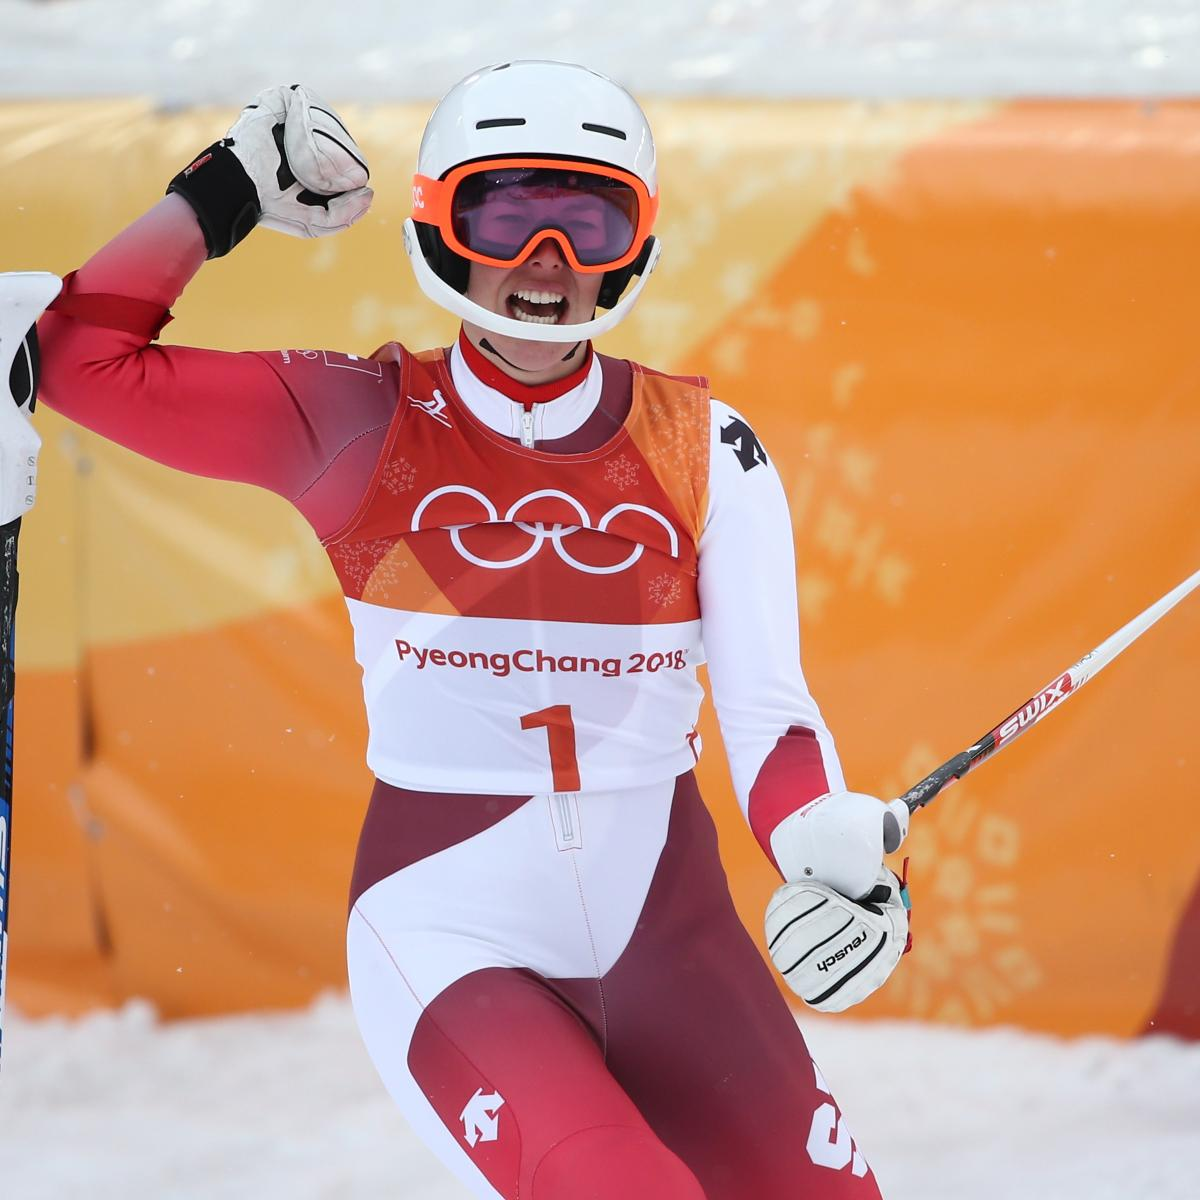 Olympic Women's Alpine Skiing Results 2018: Medal Winners for Combined